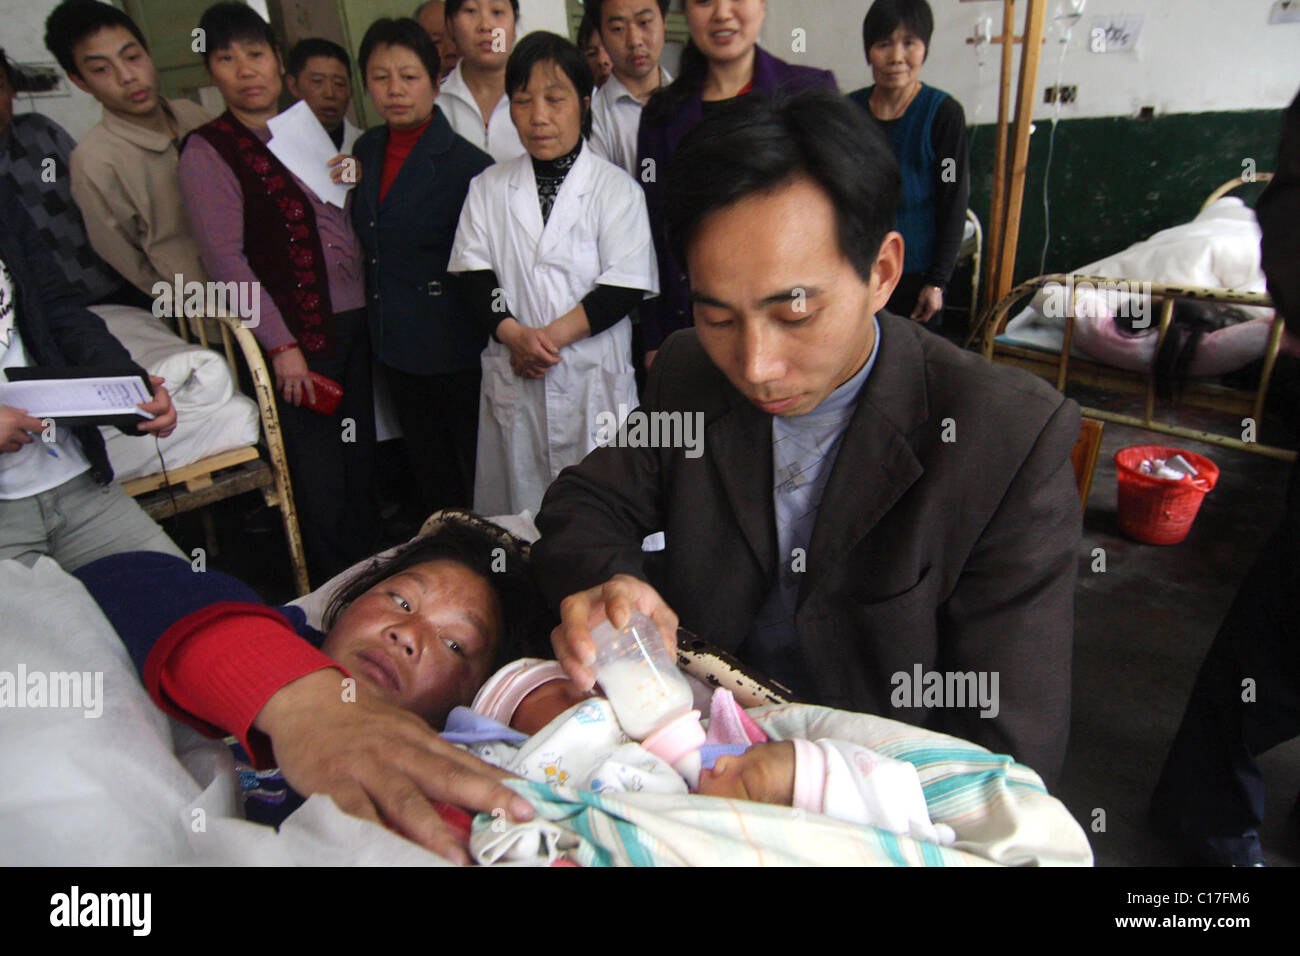 SURGEONS TO SEPARATE CONJOINED TWINS Two conjoined twins are tenderly fed by their loving parents just days before - Stock Image